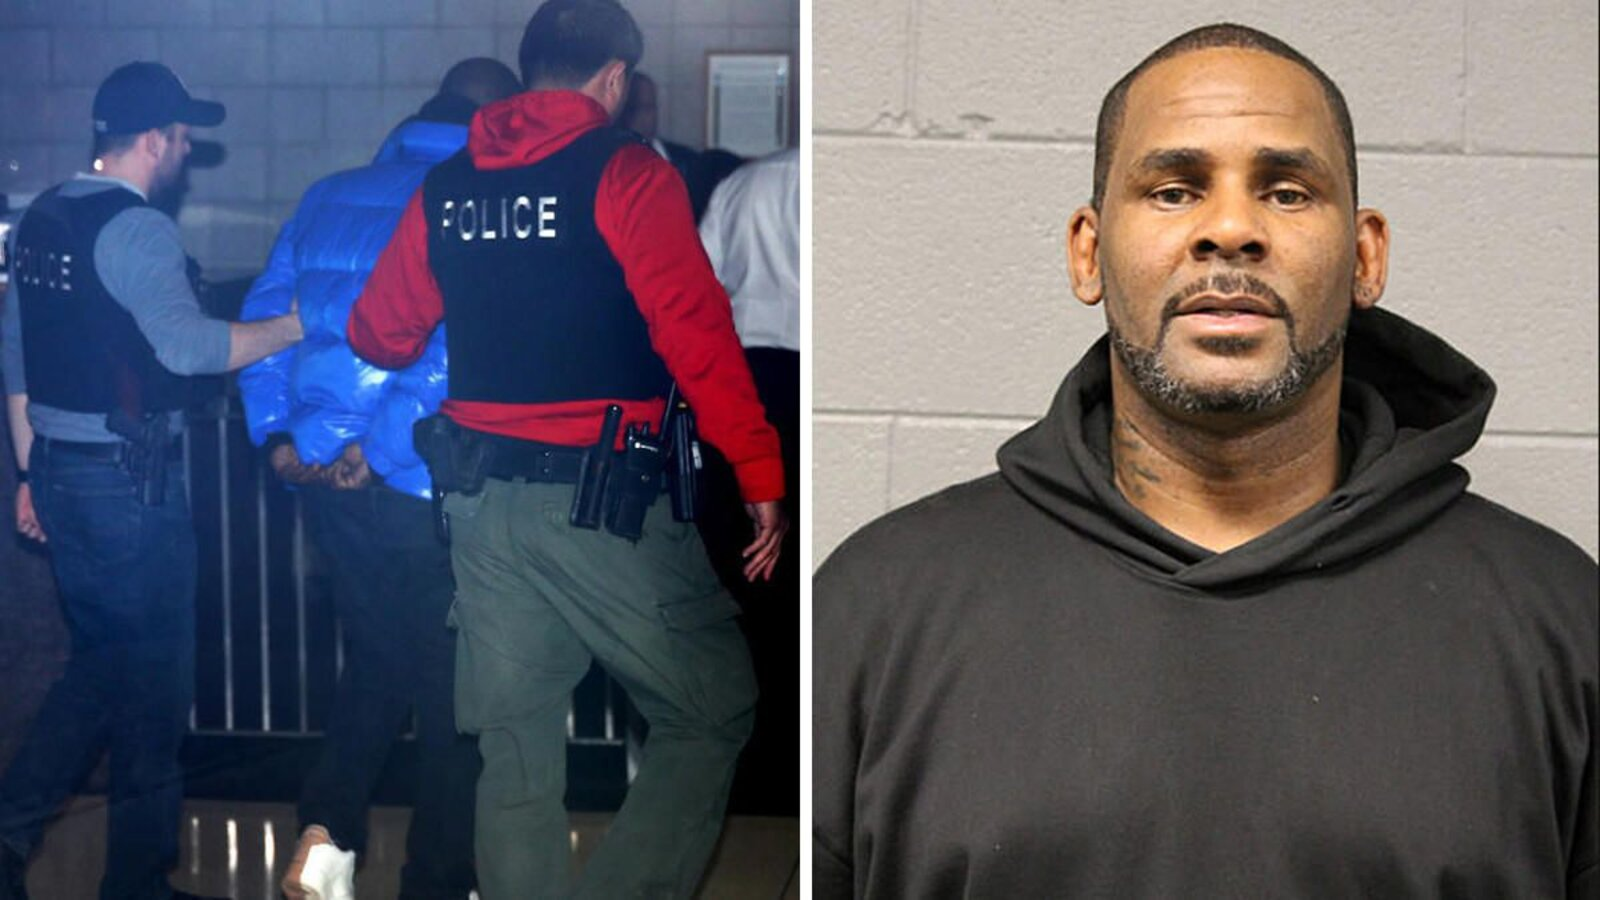 R. Kelly is trying to get anonymous judges for his upcoming trial, but he's doing it only to benefit himself. This news isn't a surprise though.